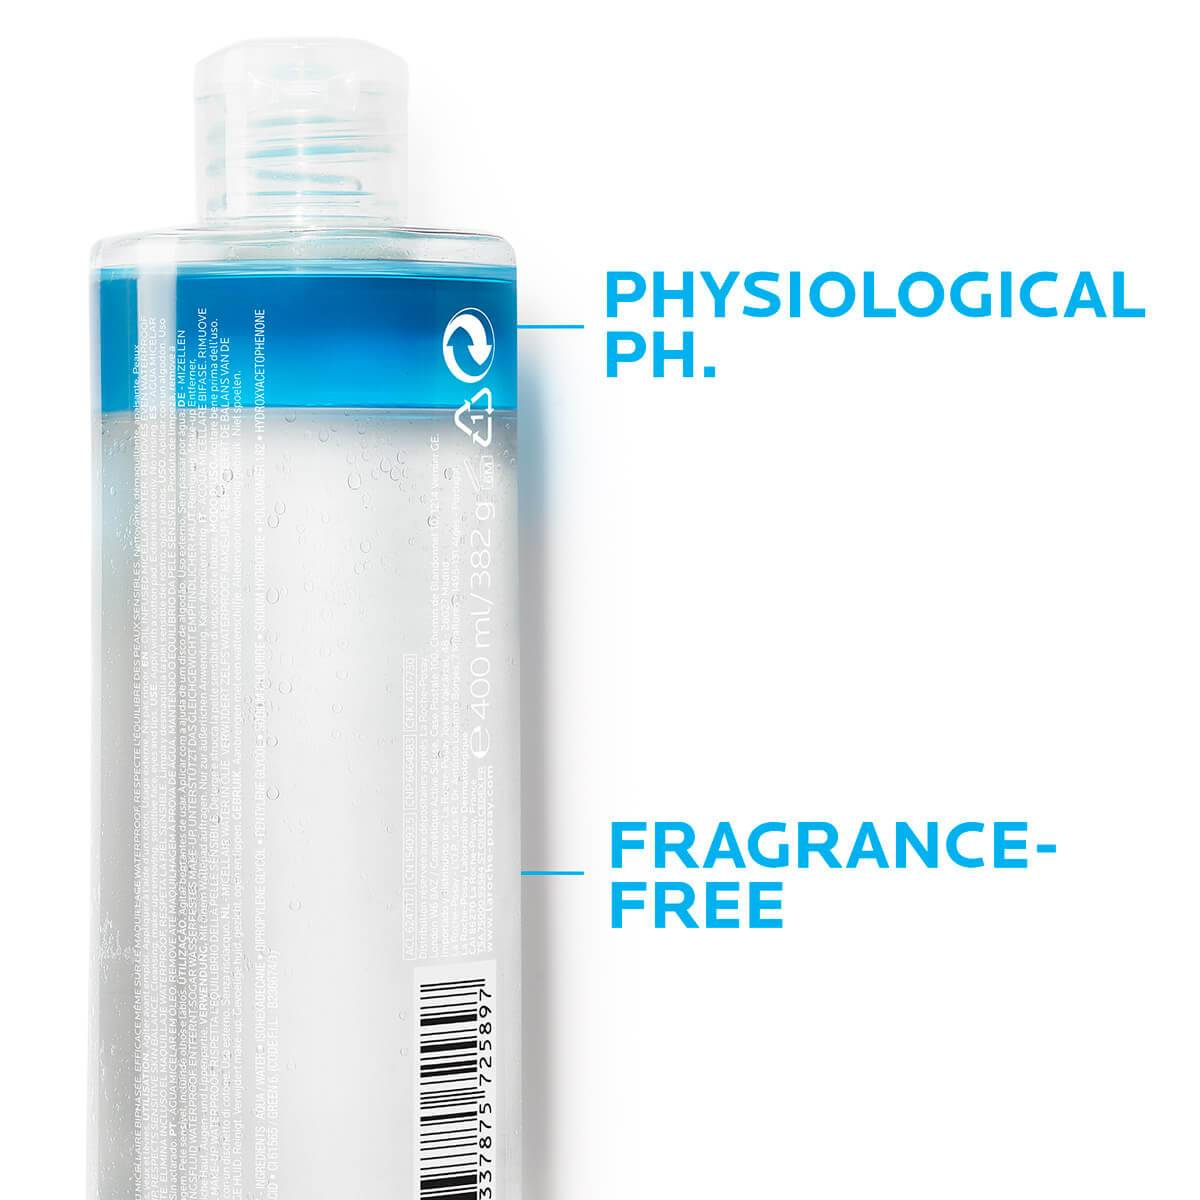 LaRochePosay-Product-Face-Physiological-Oil-Infused-Micellar-Water-Ultra-400ml-3337875725897-Zoomed-BLS